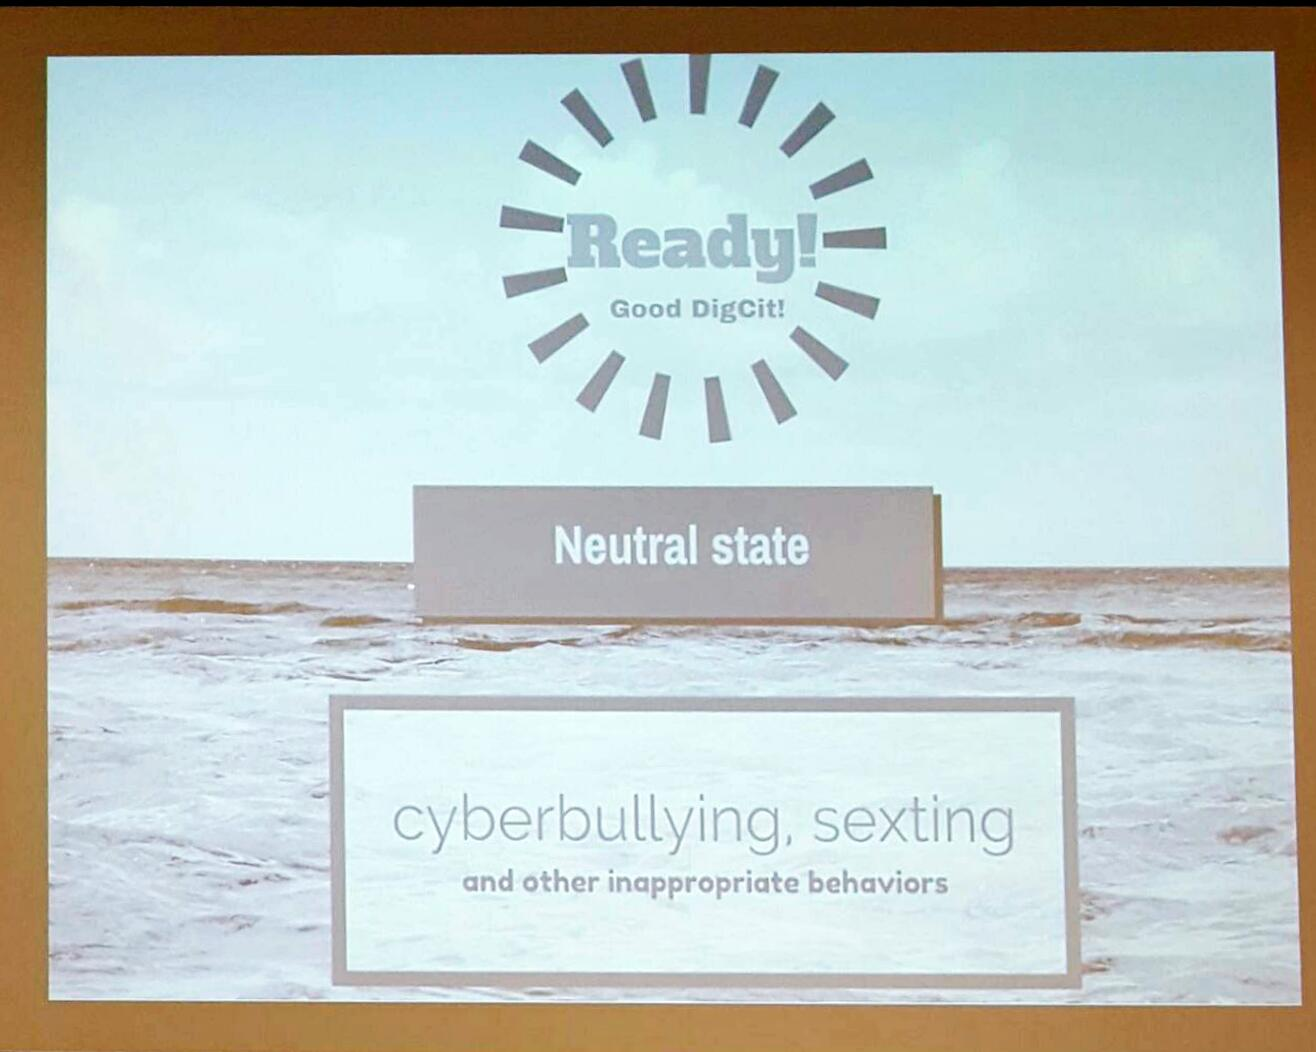 Move beyond fear to empower Ss and Ts--@SueThotz, powerful #DigCit takeaway #2016DML https://t.co/zUk0izpZvL https://t.co/PxNkSQG36k